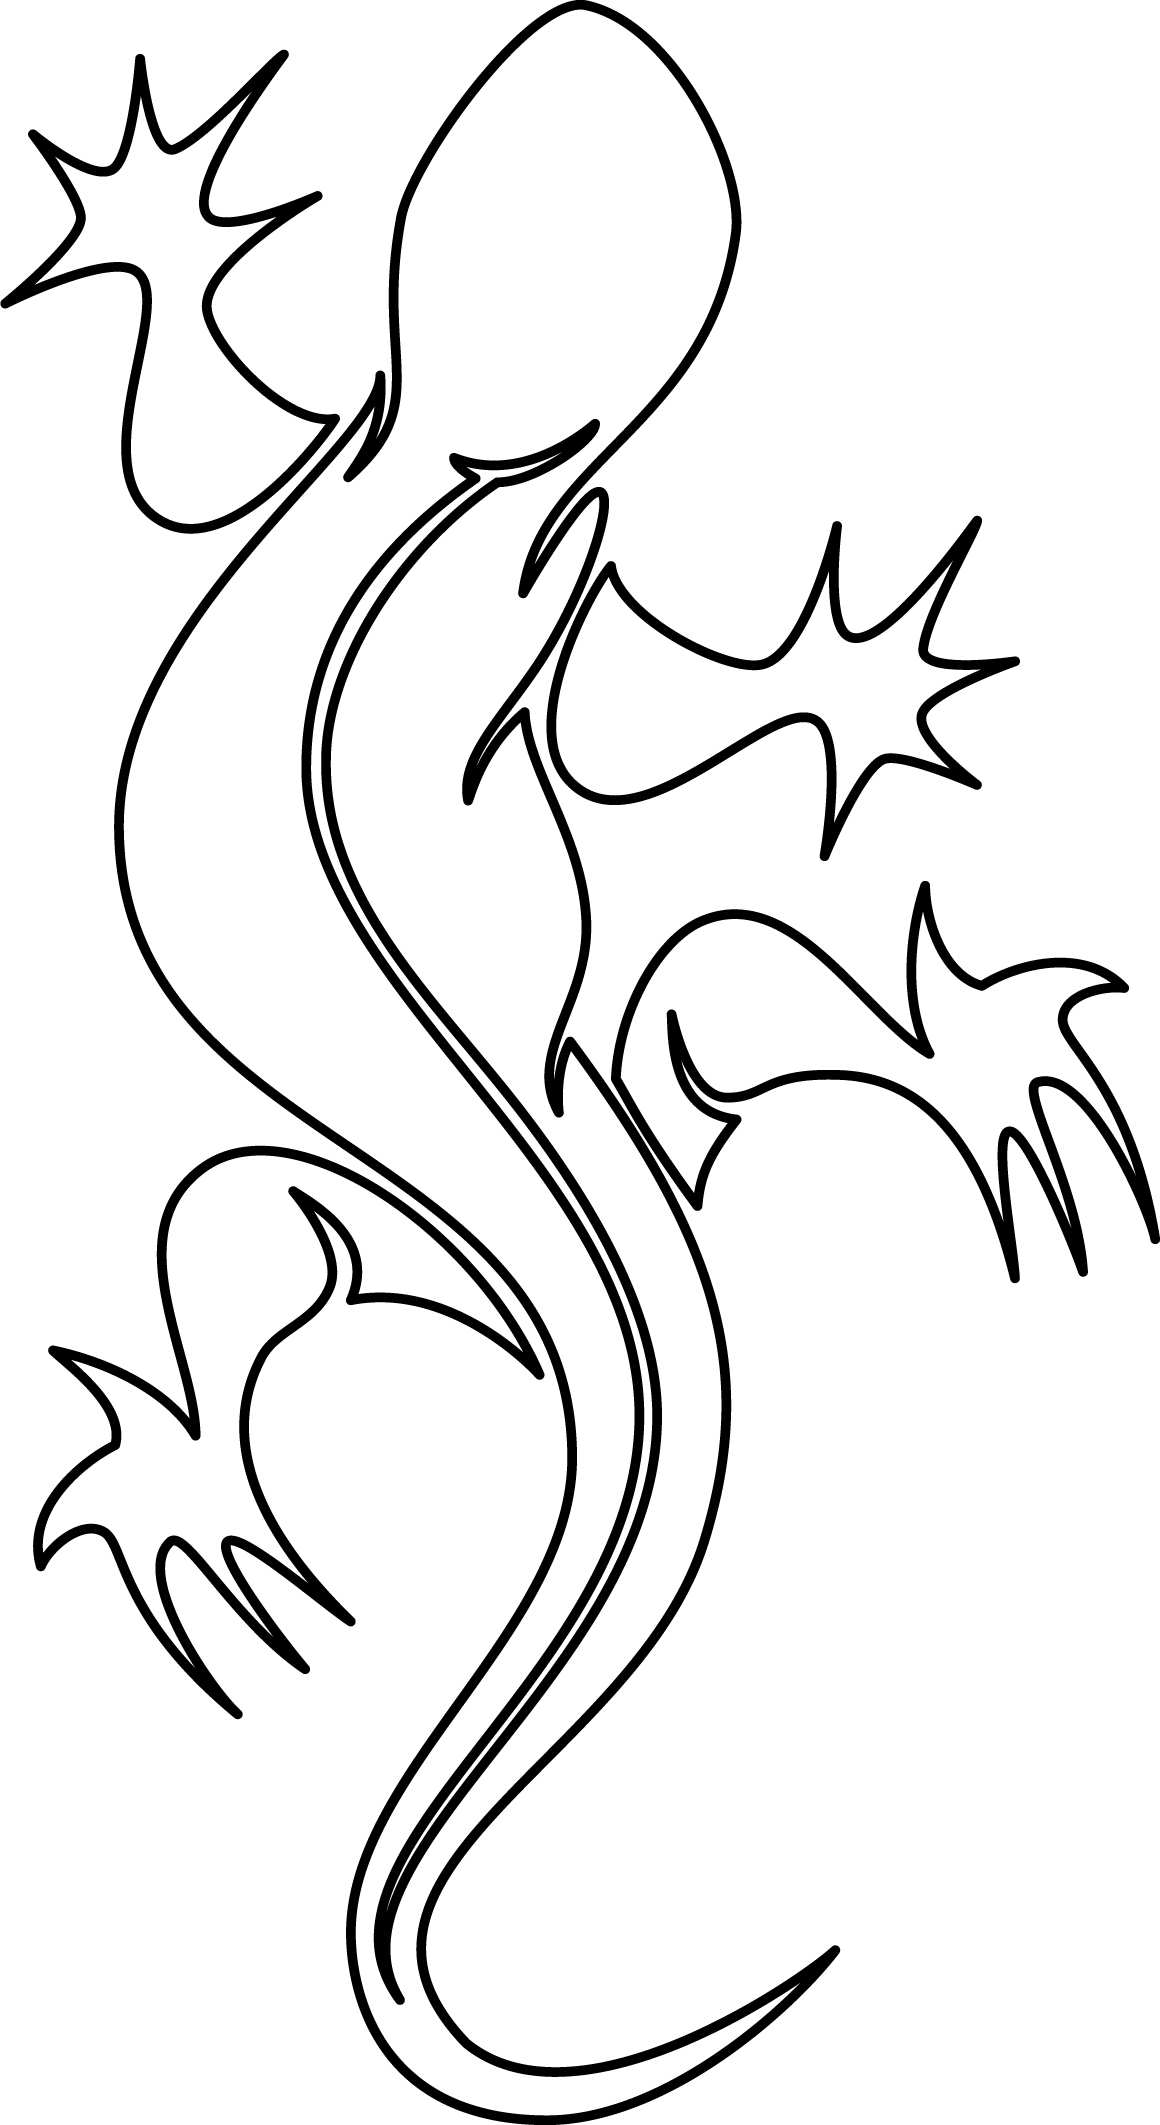 Drawings Of Lizards - ClipArt Best